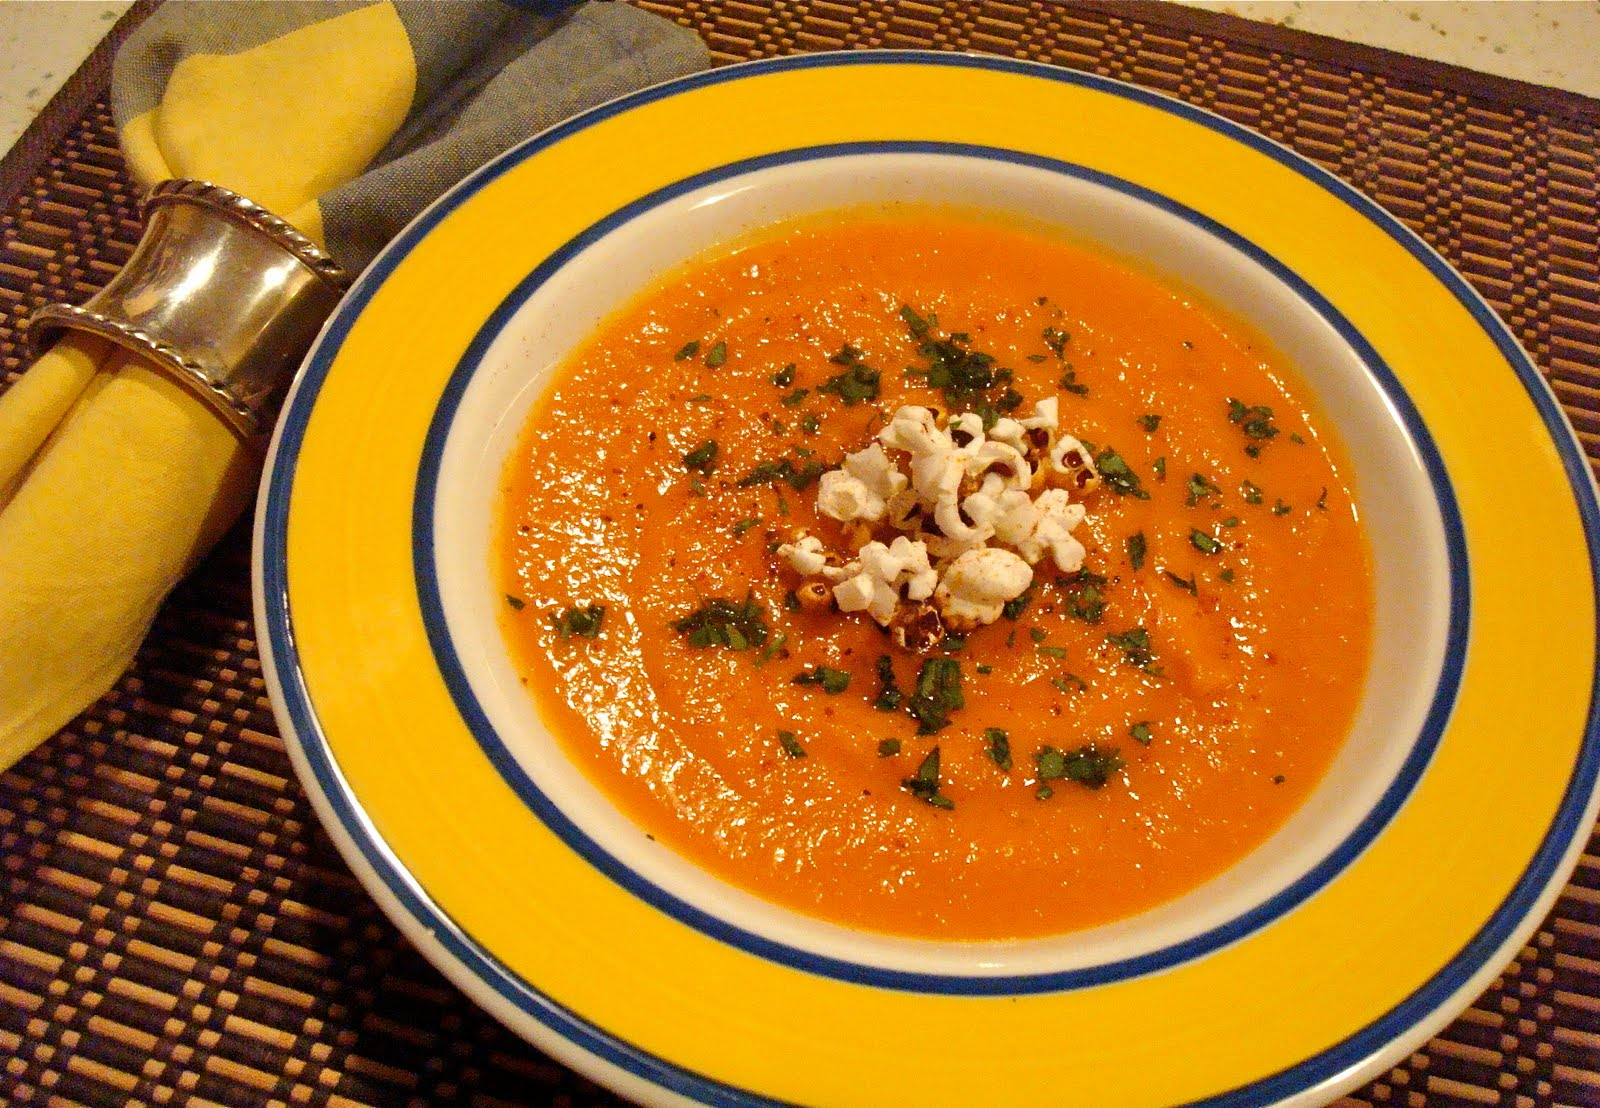 Beach Eats: Spicy Sweet Potato and Tomato Soup from The South Beach ...